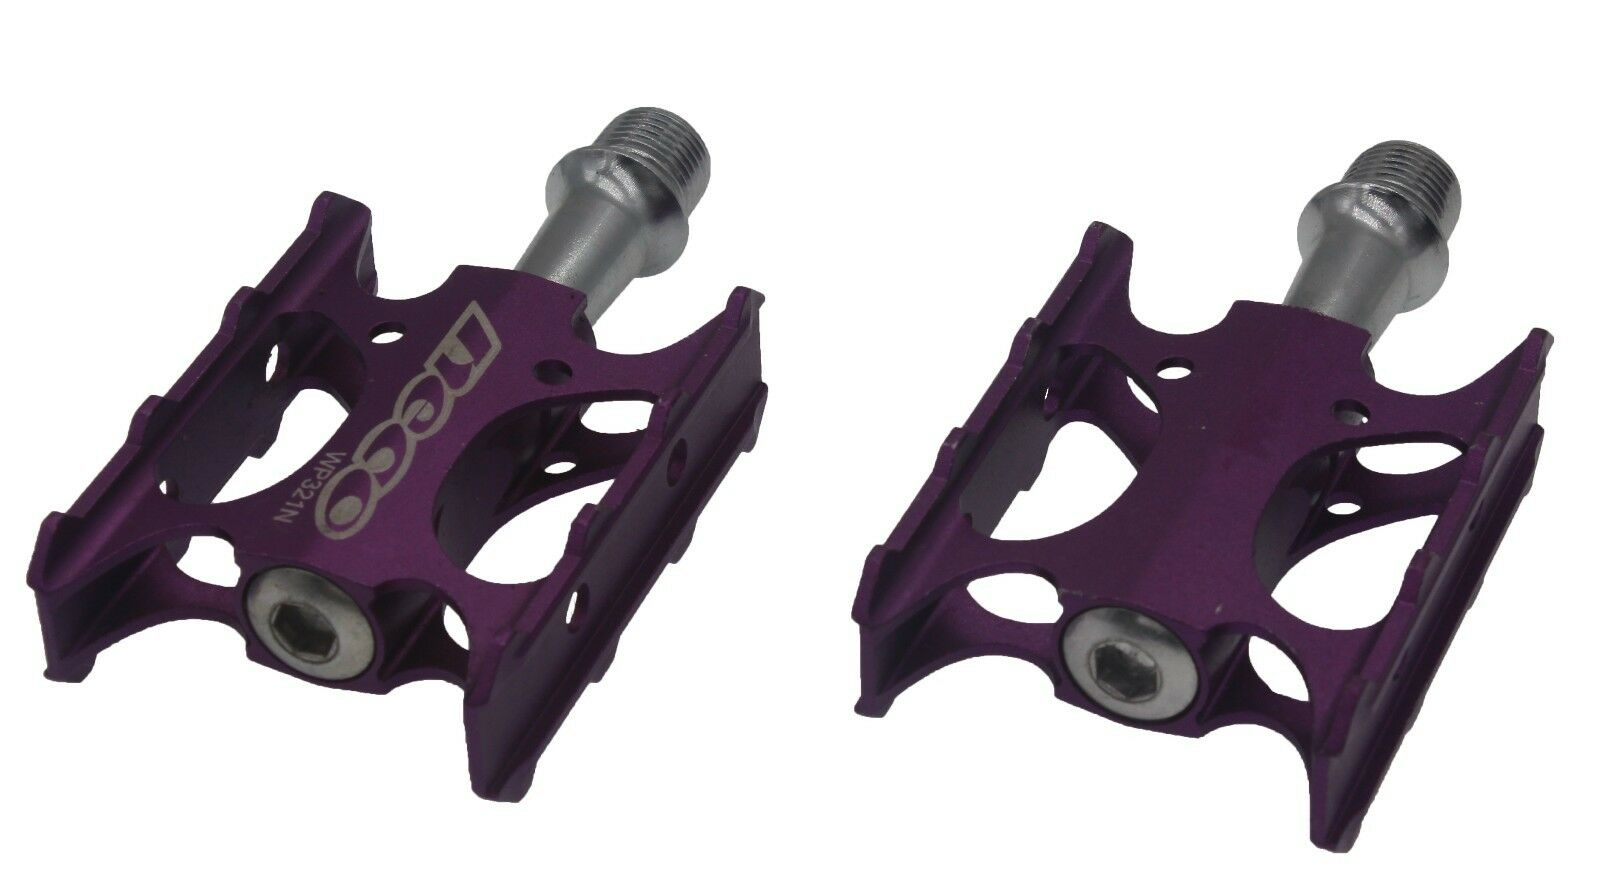 Neco Wp321n Mtb Bike Bicycle Alloy Bearing Pedal With Cr Mo Cnc